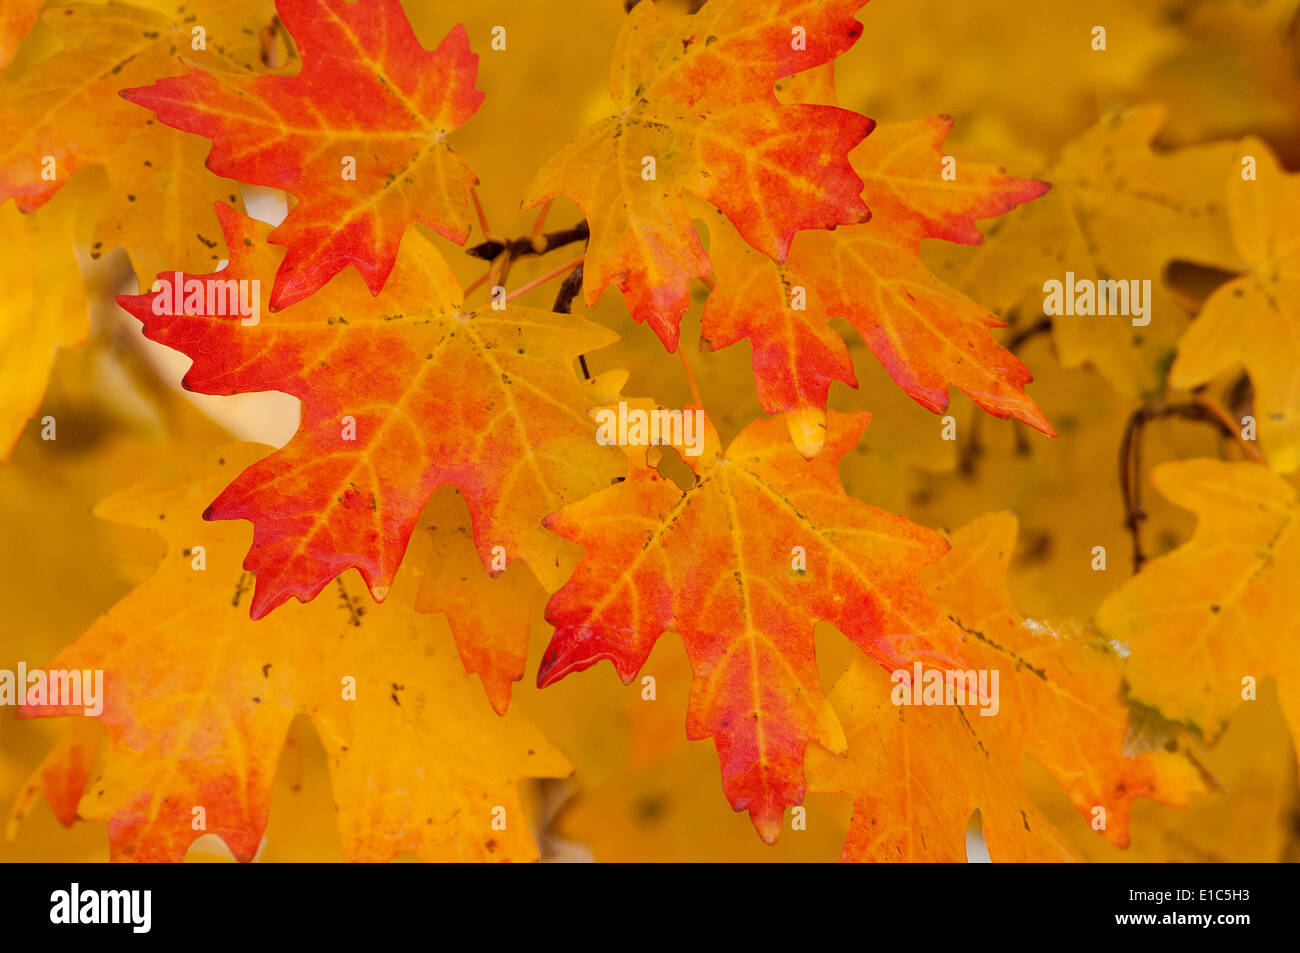 Vivid red and orange maple leaves in autumn. - Stock Image